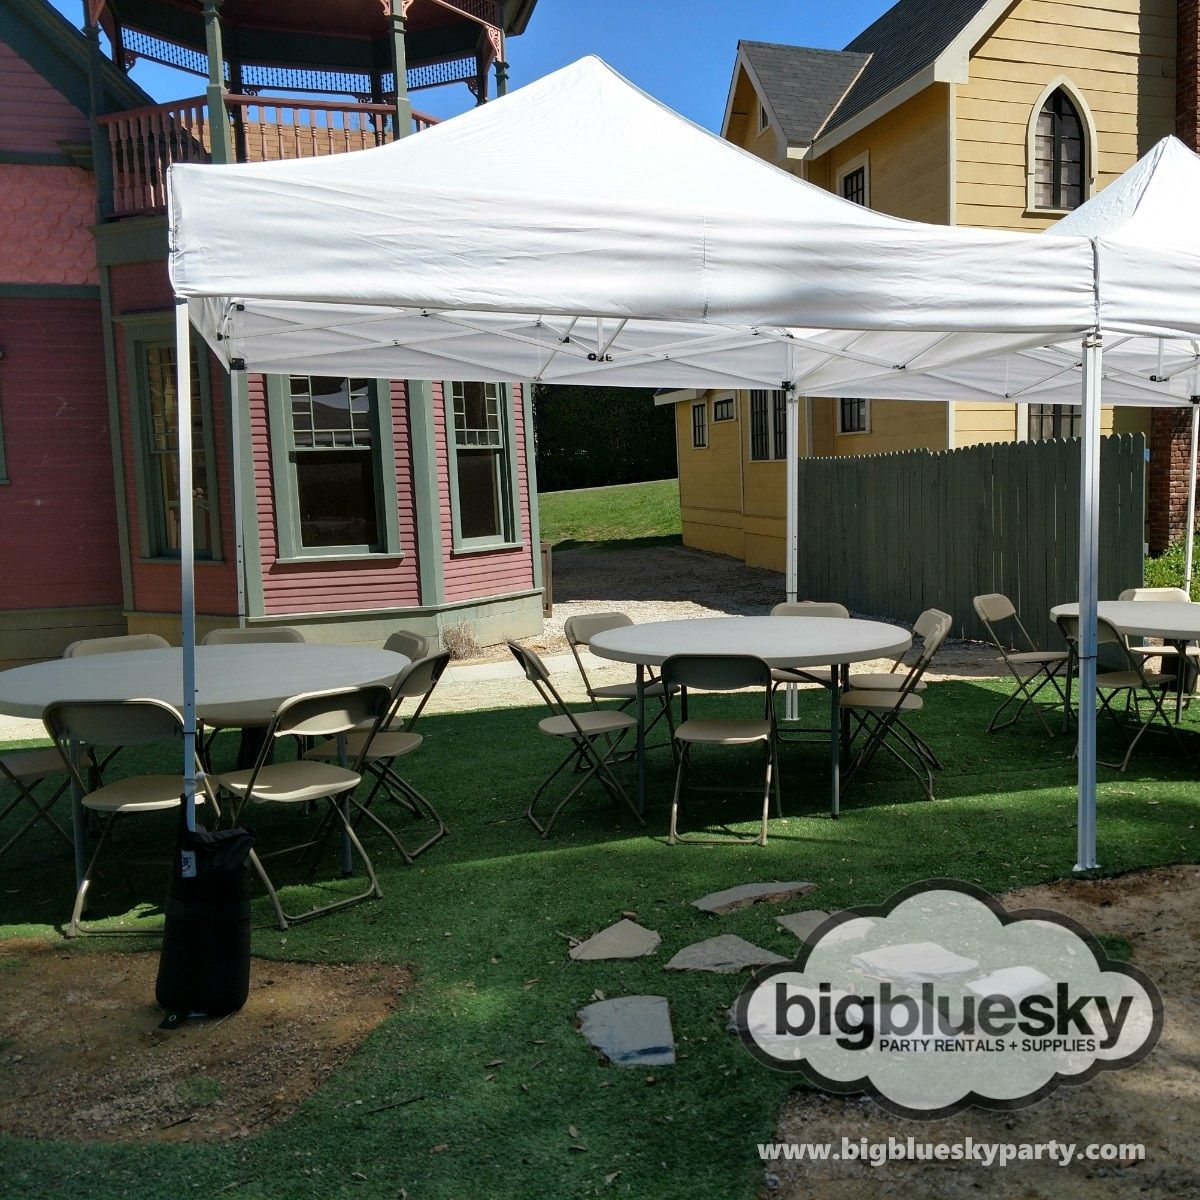 10 X 10 Pop Up Canopy Rental Party Rentals Canopy Rentals Canopy Tent Canopy